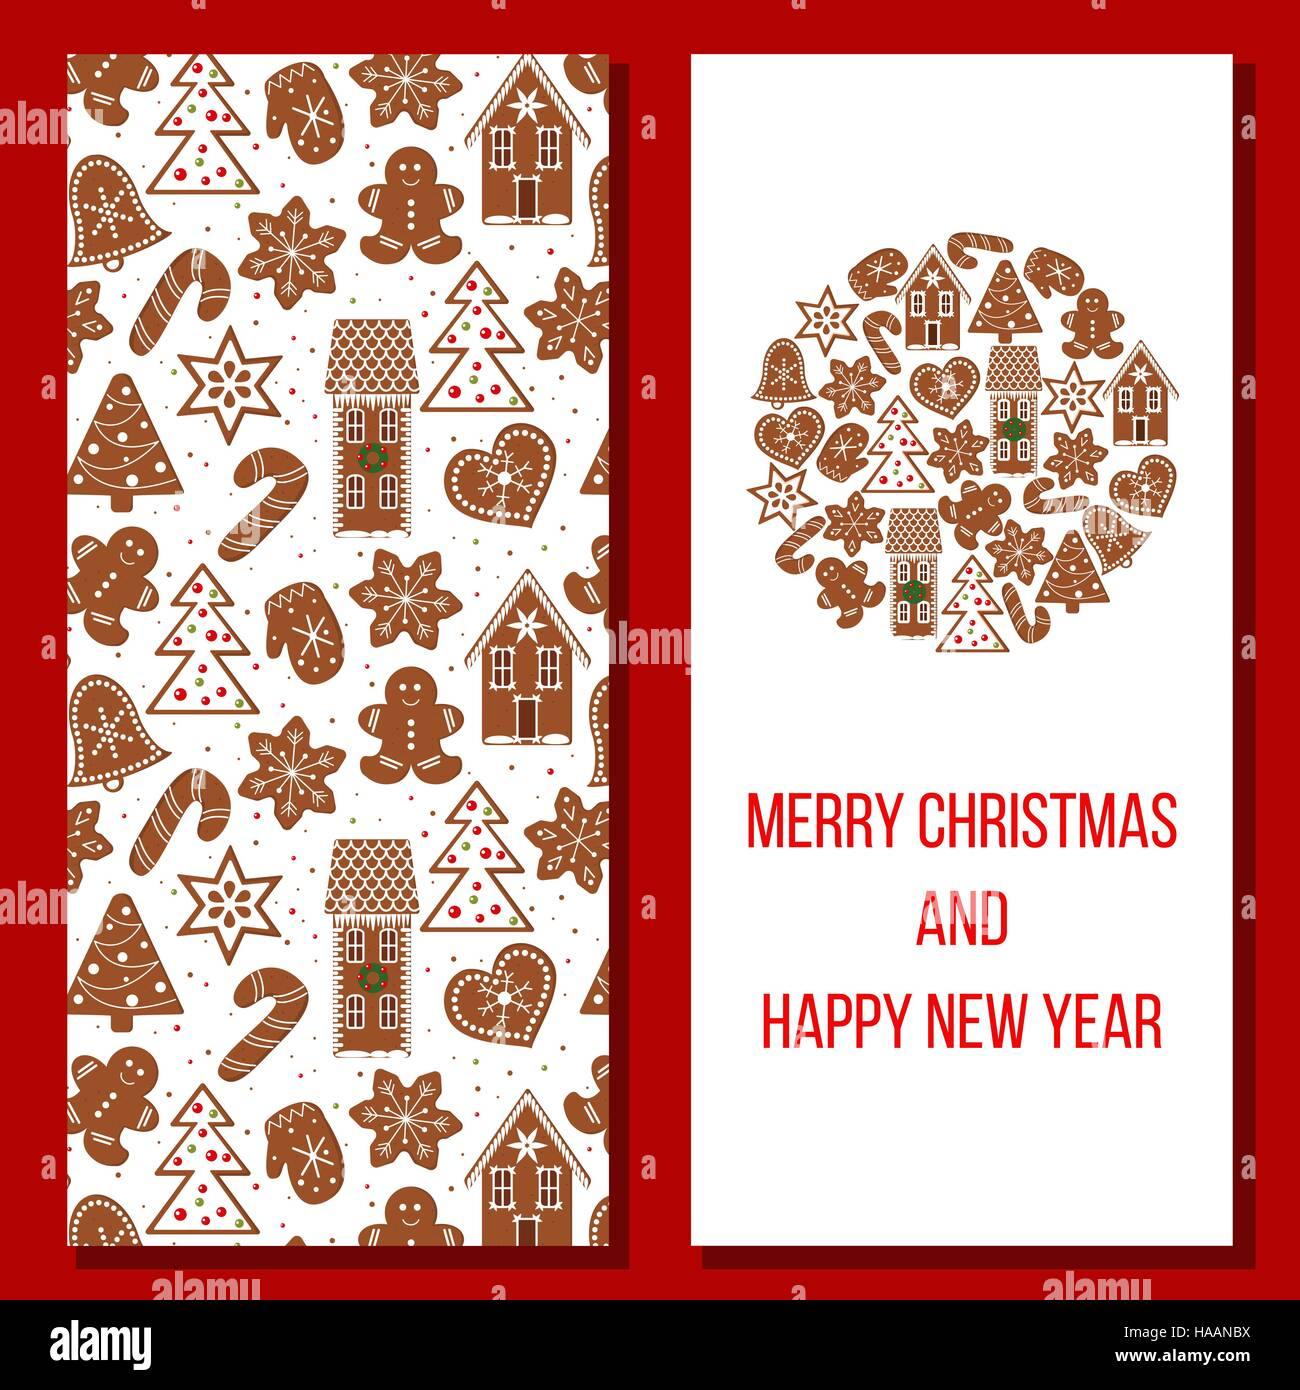 gingerbread christmas and happy new year greetings set with funny figures xmas tree snowflakes cane heart star house hat design elements for p